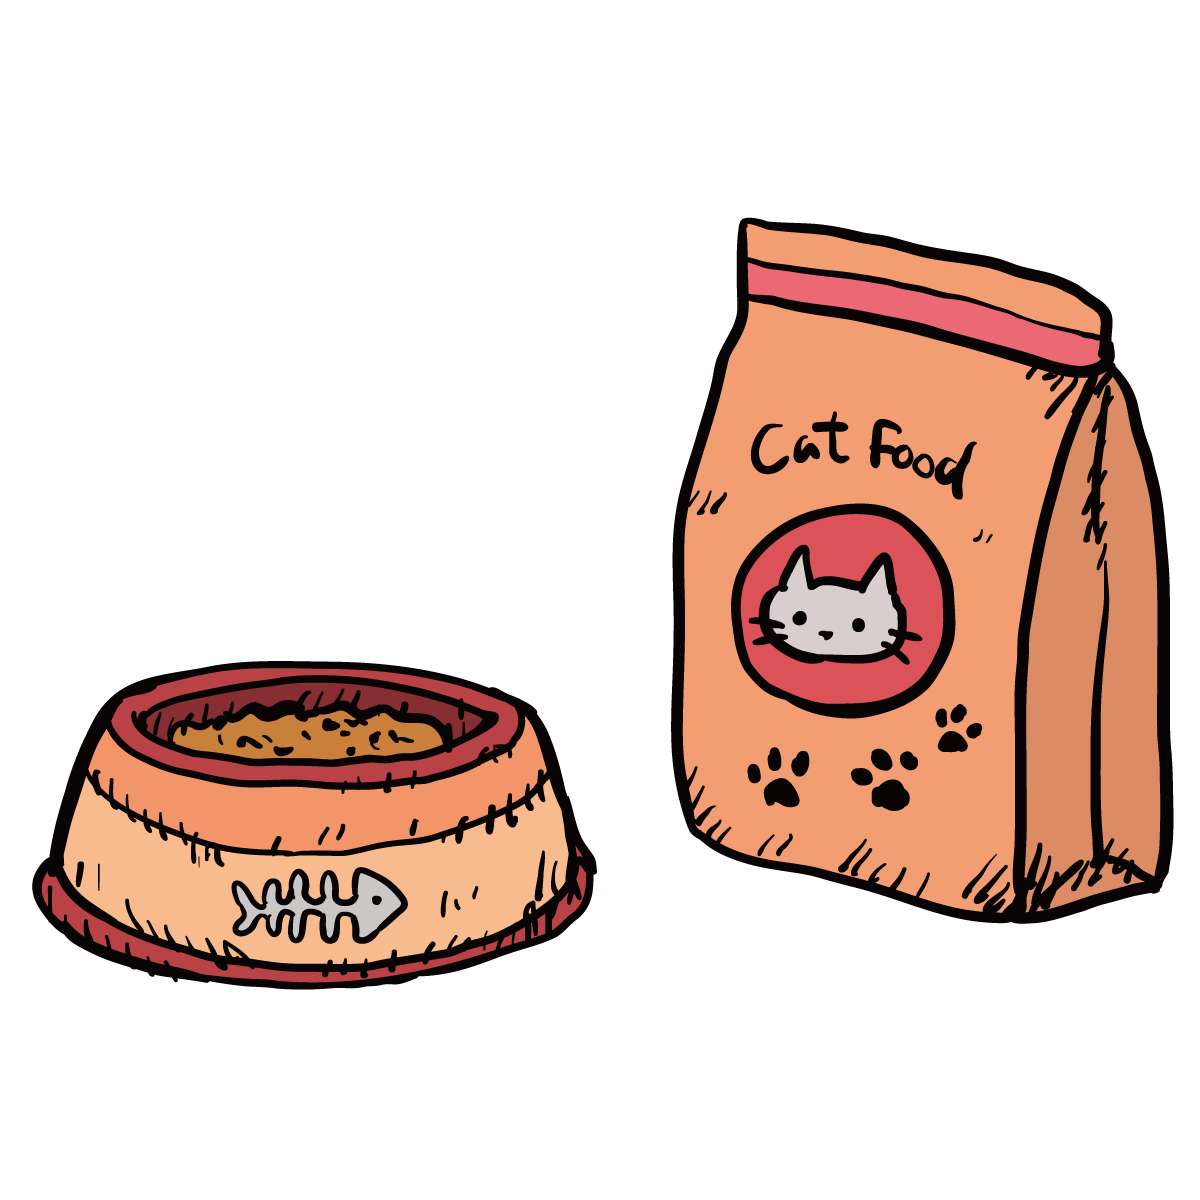 Catfood2